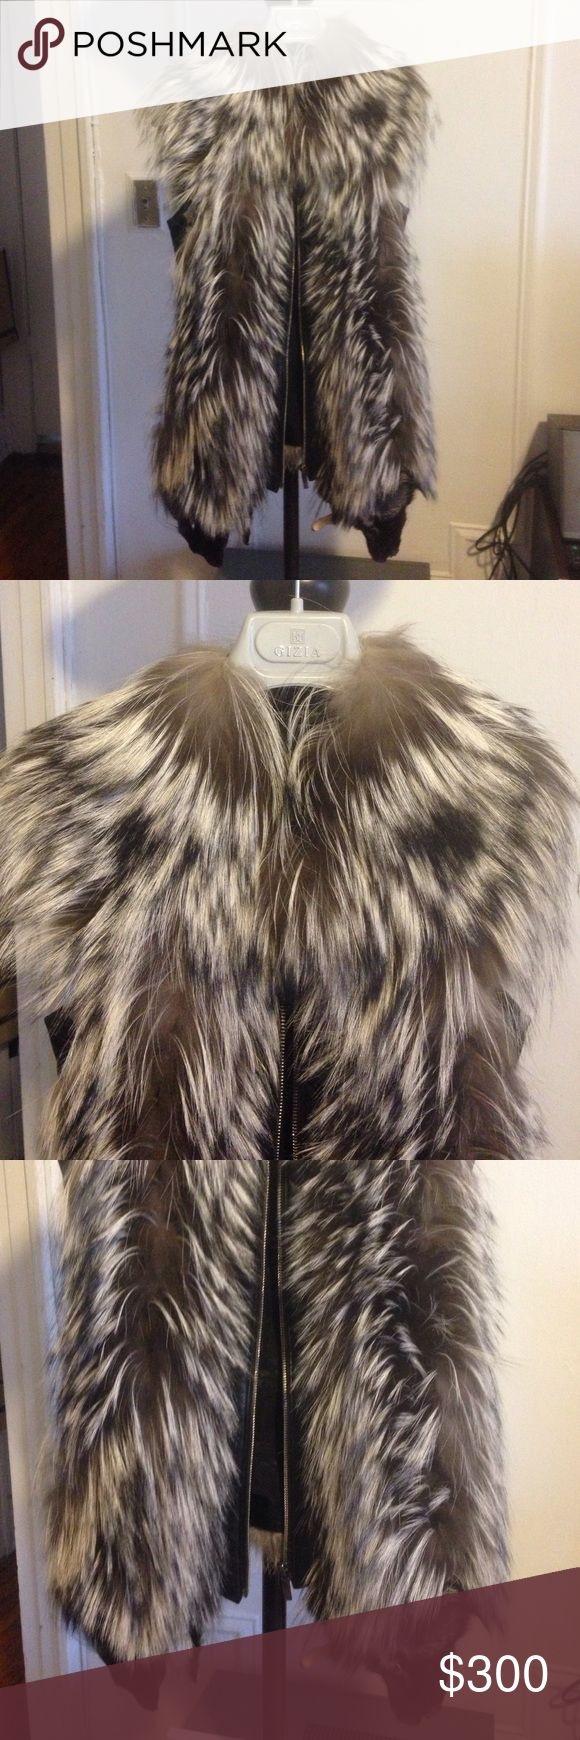 Gizia real fur  vest This is a Gizia brand vest. Made in Turkey. 100% real fur. Has some leather details on the backs! It's so warm and look very chic . If you see very close  you might mention that it's been worn. But hey! I bought it for 750$! And it's a real fur! . If you need closer pictures just ask😉. And also Feel free to make a reasonable offer in any of my listings!😘 gizia Jackets & Coats Vests